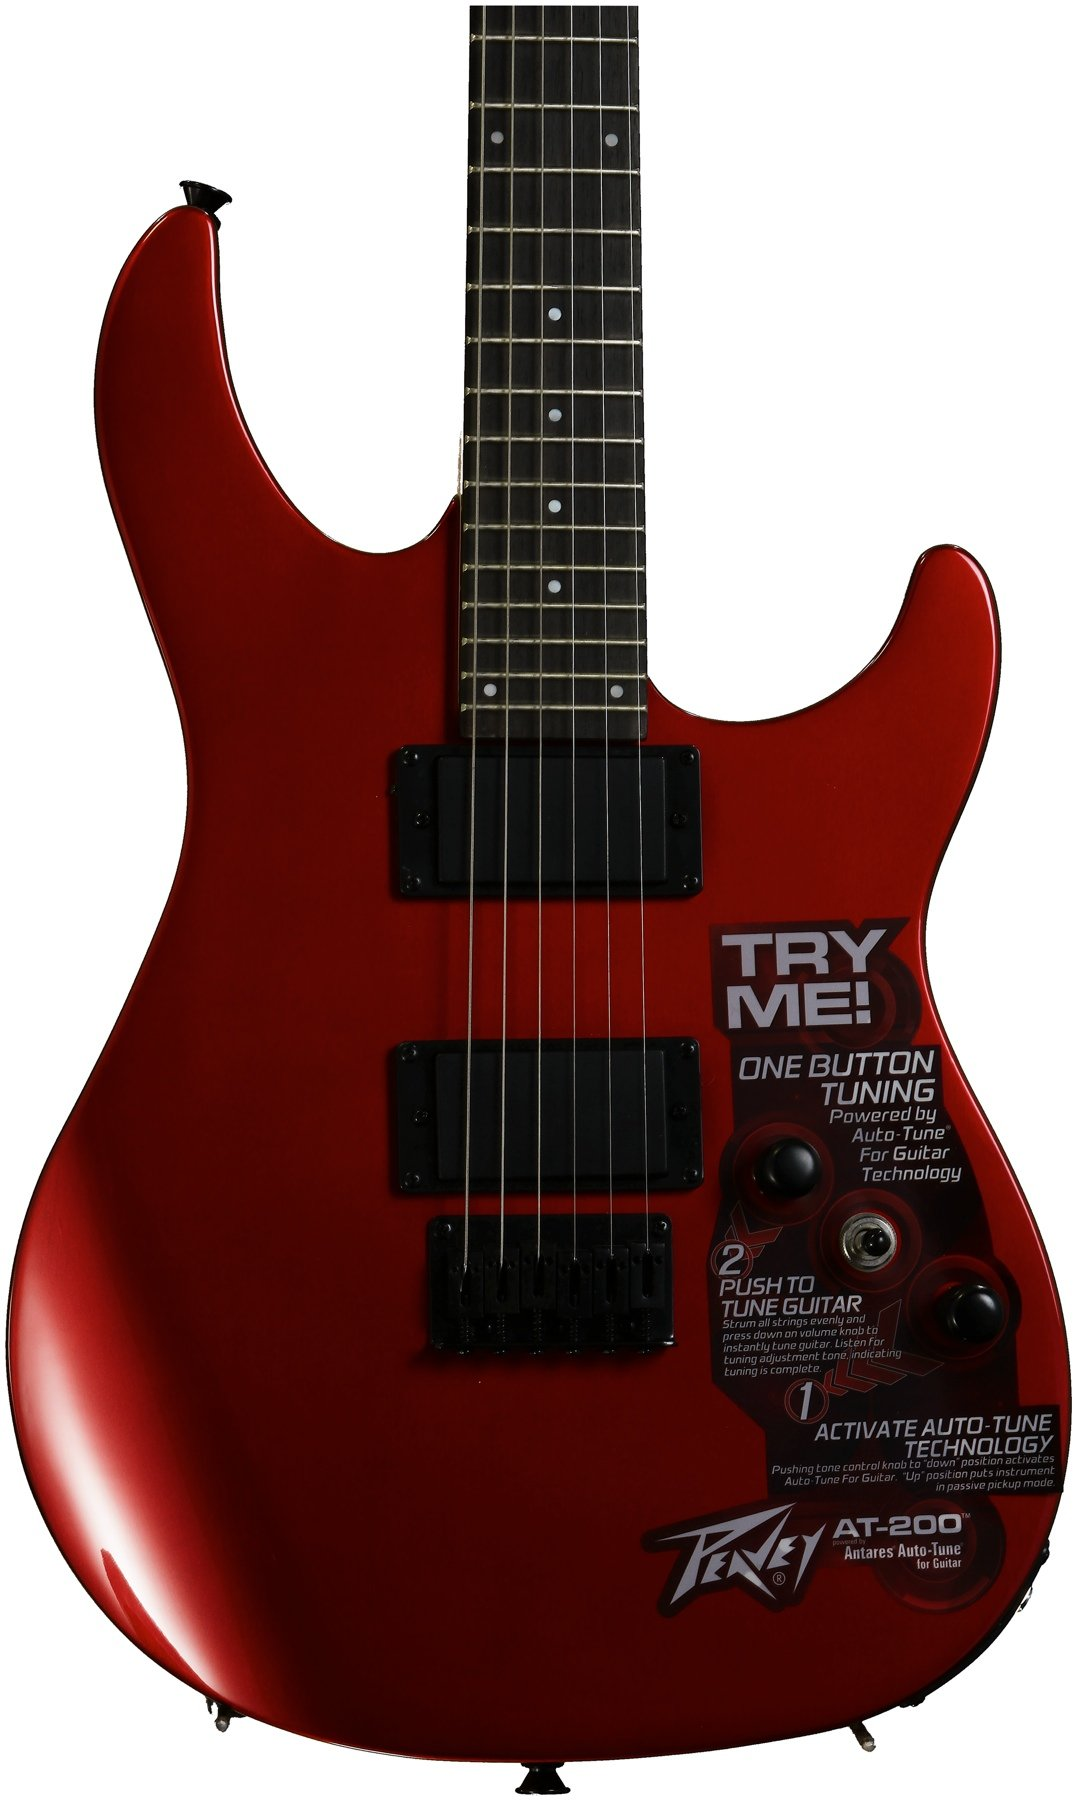 Peavey AT-200 Auto-Tune Guitar - Red | Sweetwater